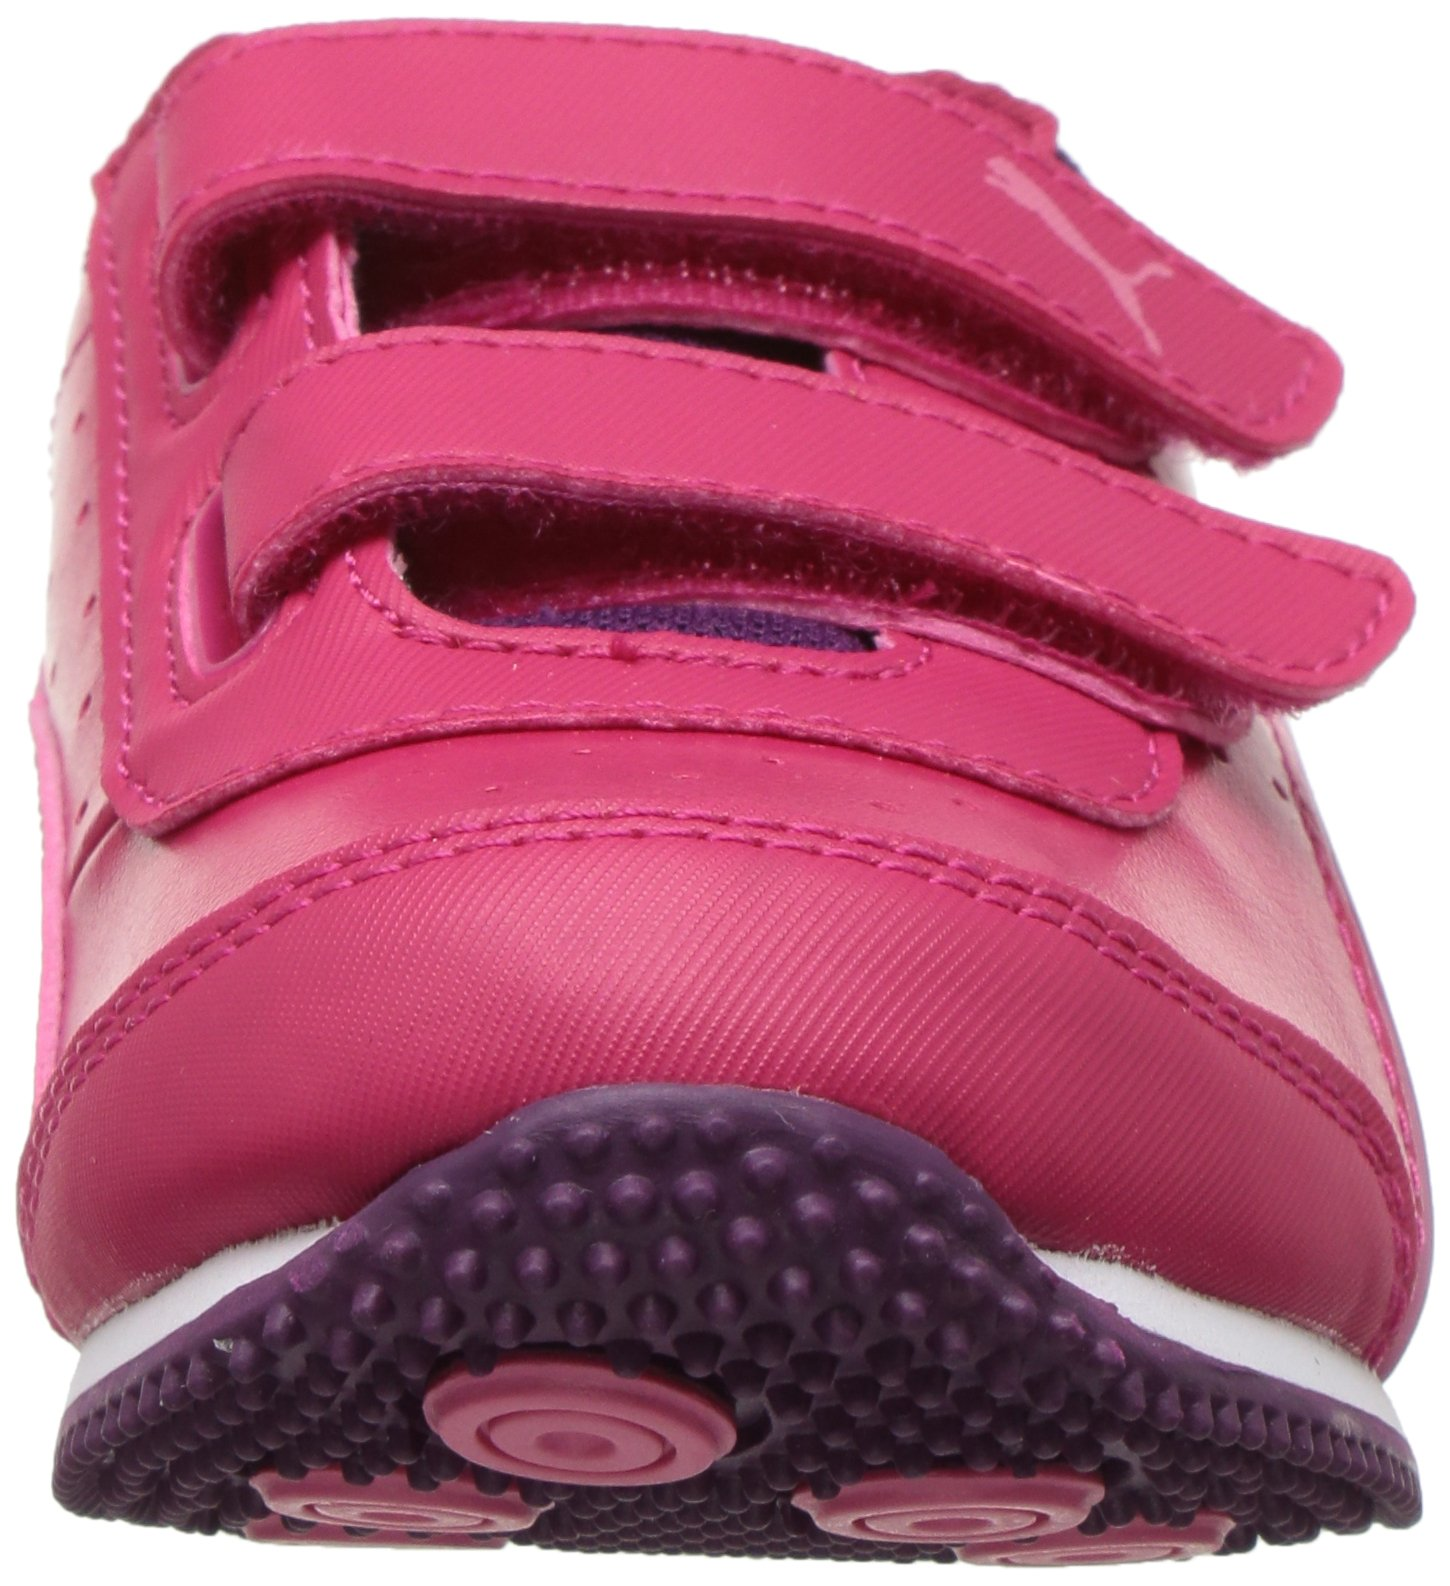 PUMA Baby Speed Lightup Power V Kids Sneaker, Love Potion-Rapture Rose, 5 M US Toddler by PUMA (Image #4)